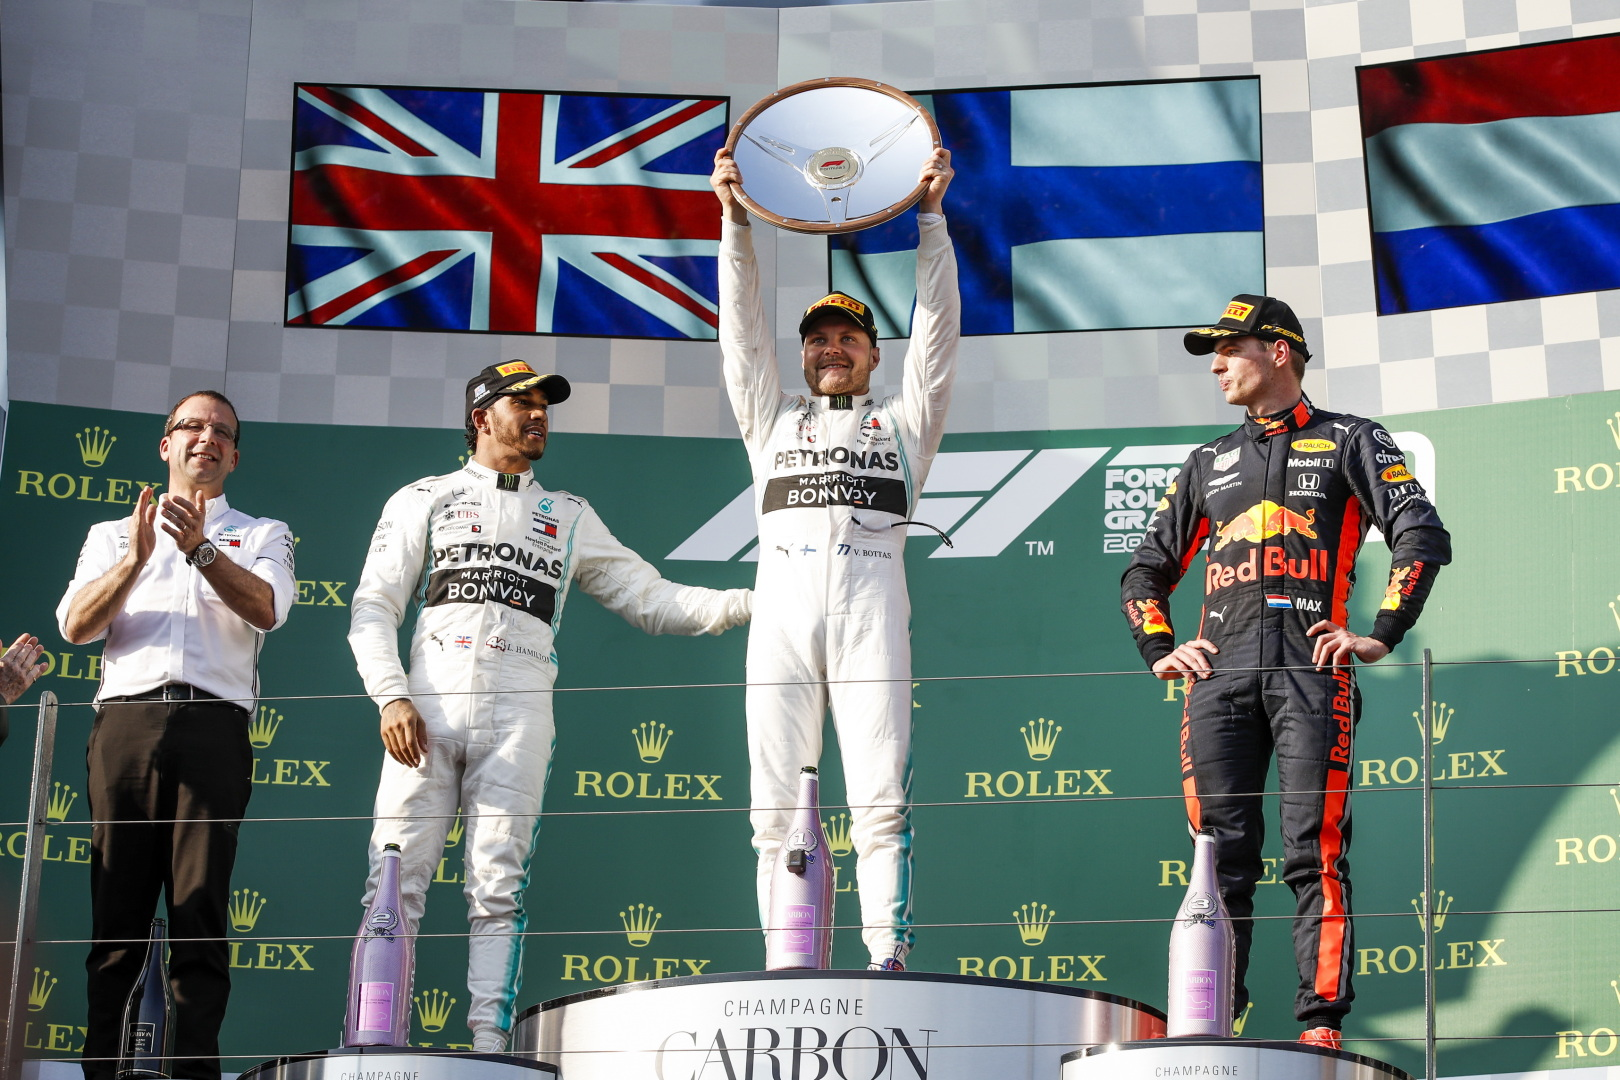 Mercedes Would Win The First Race Of The Season In 2019 After Struggling In Pre-Season Testsaustralia 2019 Podium